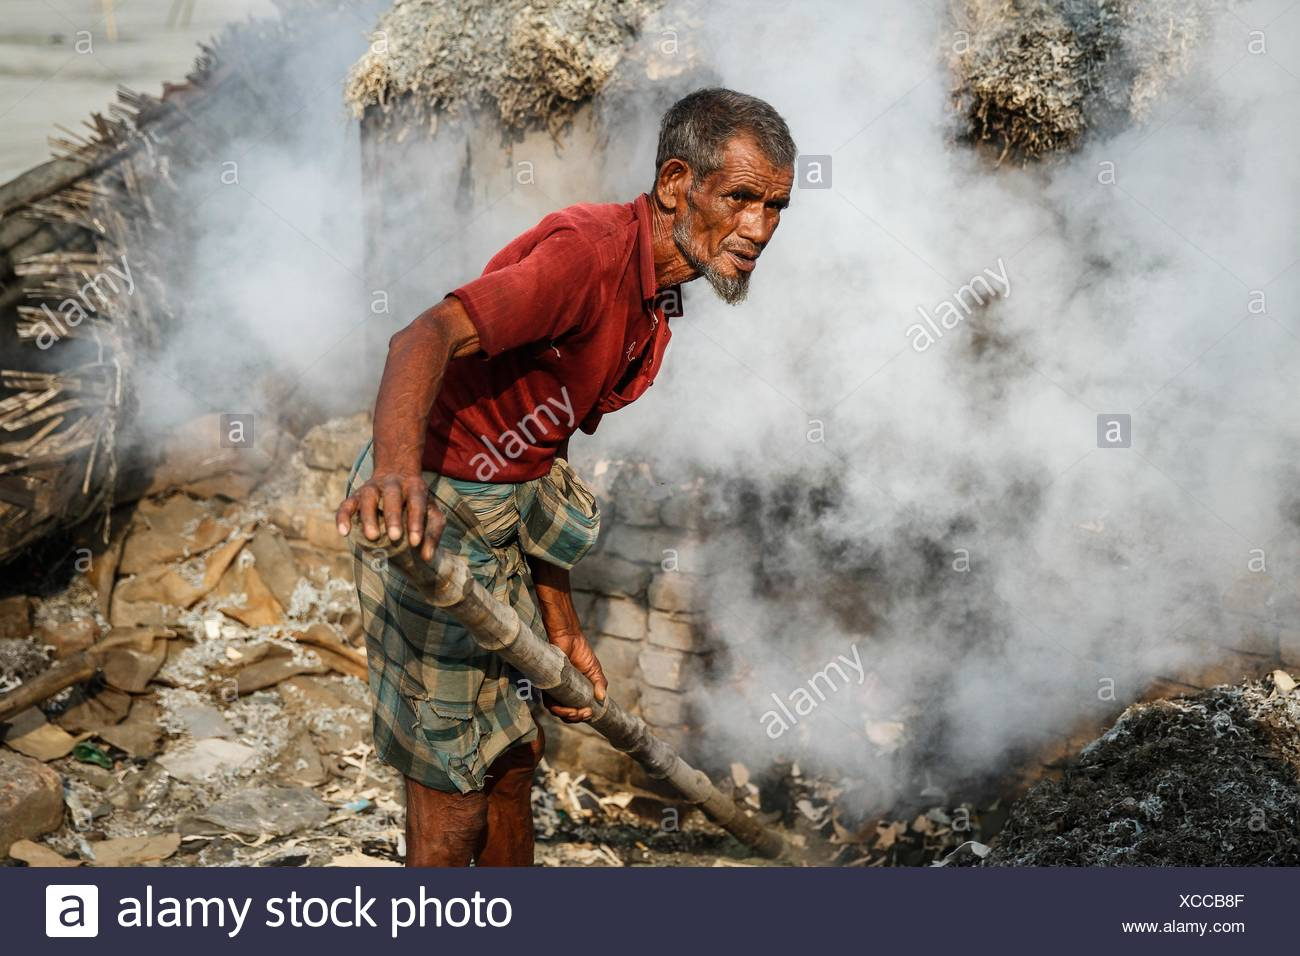 A man processes tannery wastes to make poultry feed at Hazaribagh along the polluted Buriganga river in Dhaka. - Stock Image